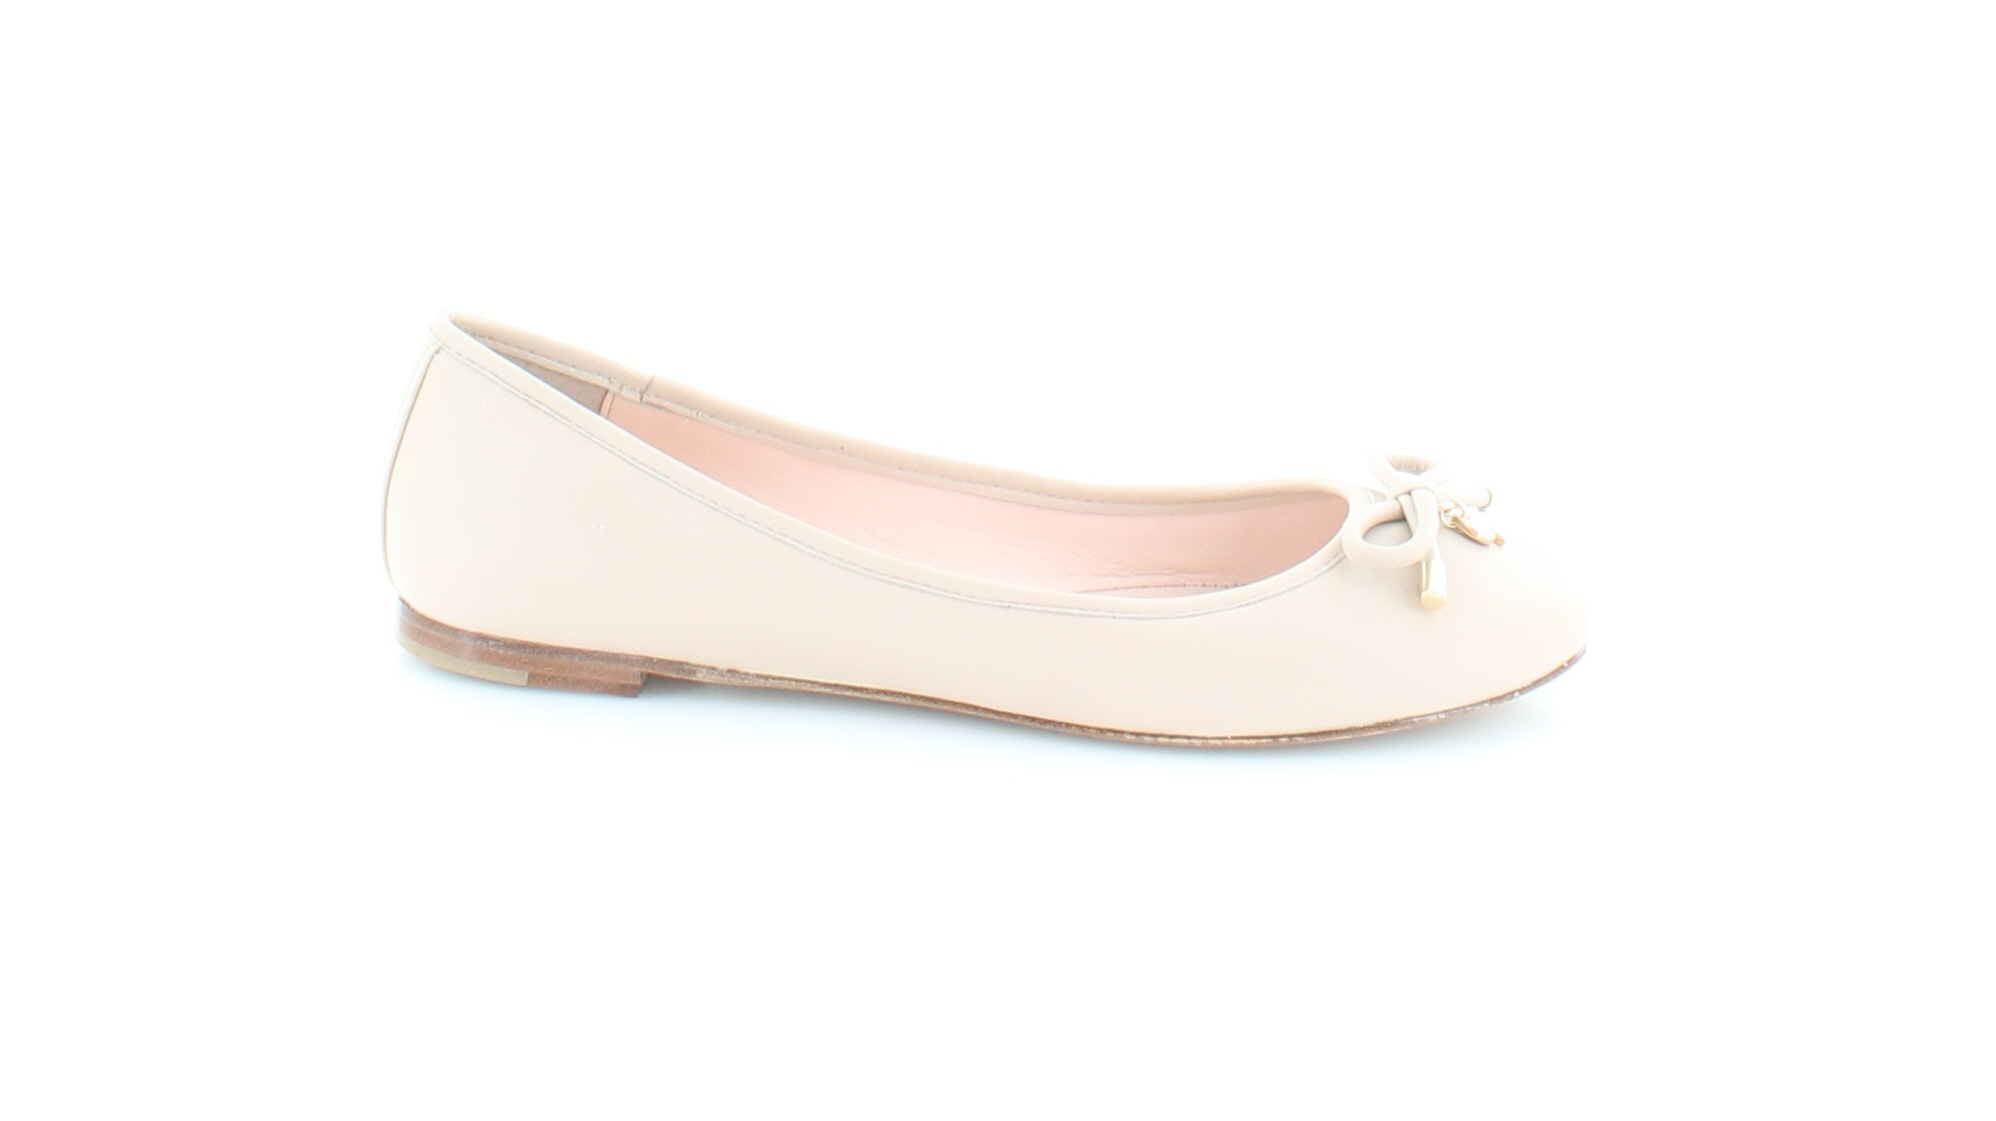 d6562be31ae1 Image is loading kate spade new york willa beige womens shoes jpg 1996x1121 Kate  spade shoes